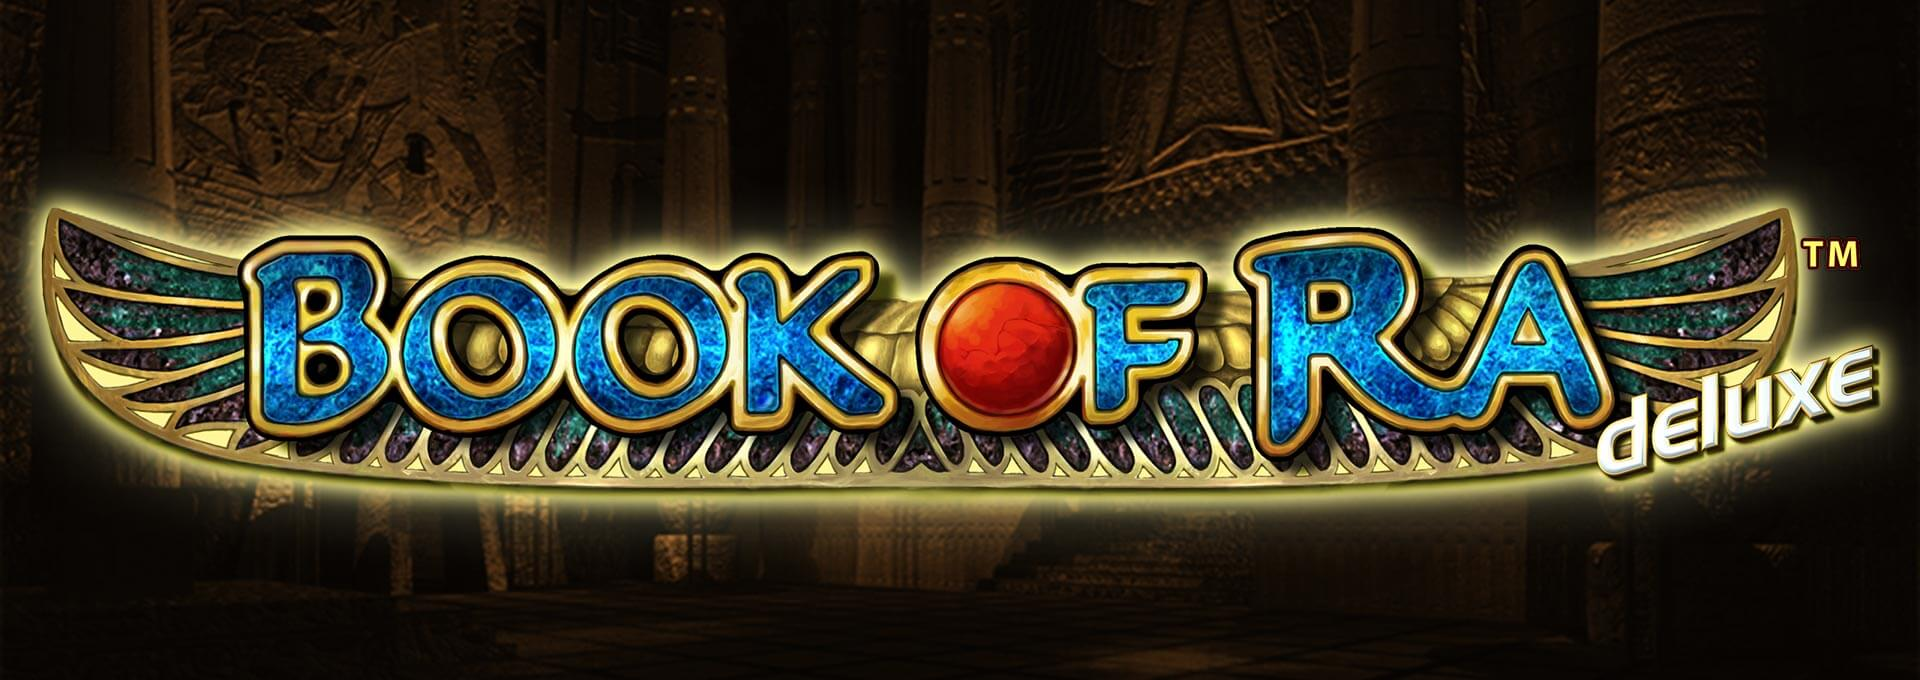 blackjack online casino book of ra download free